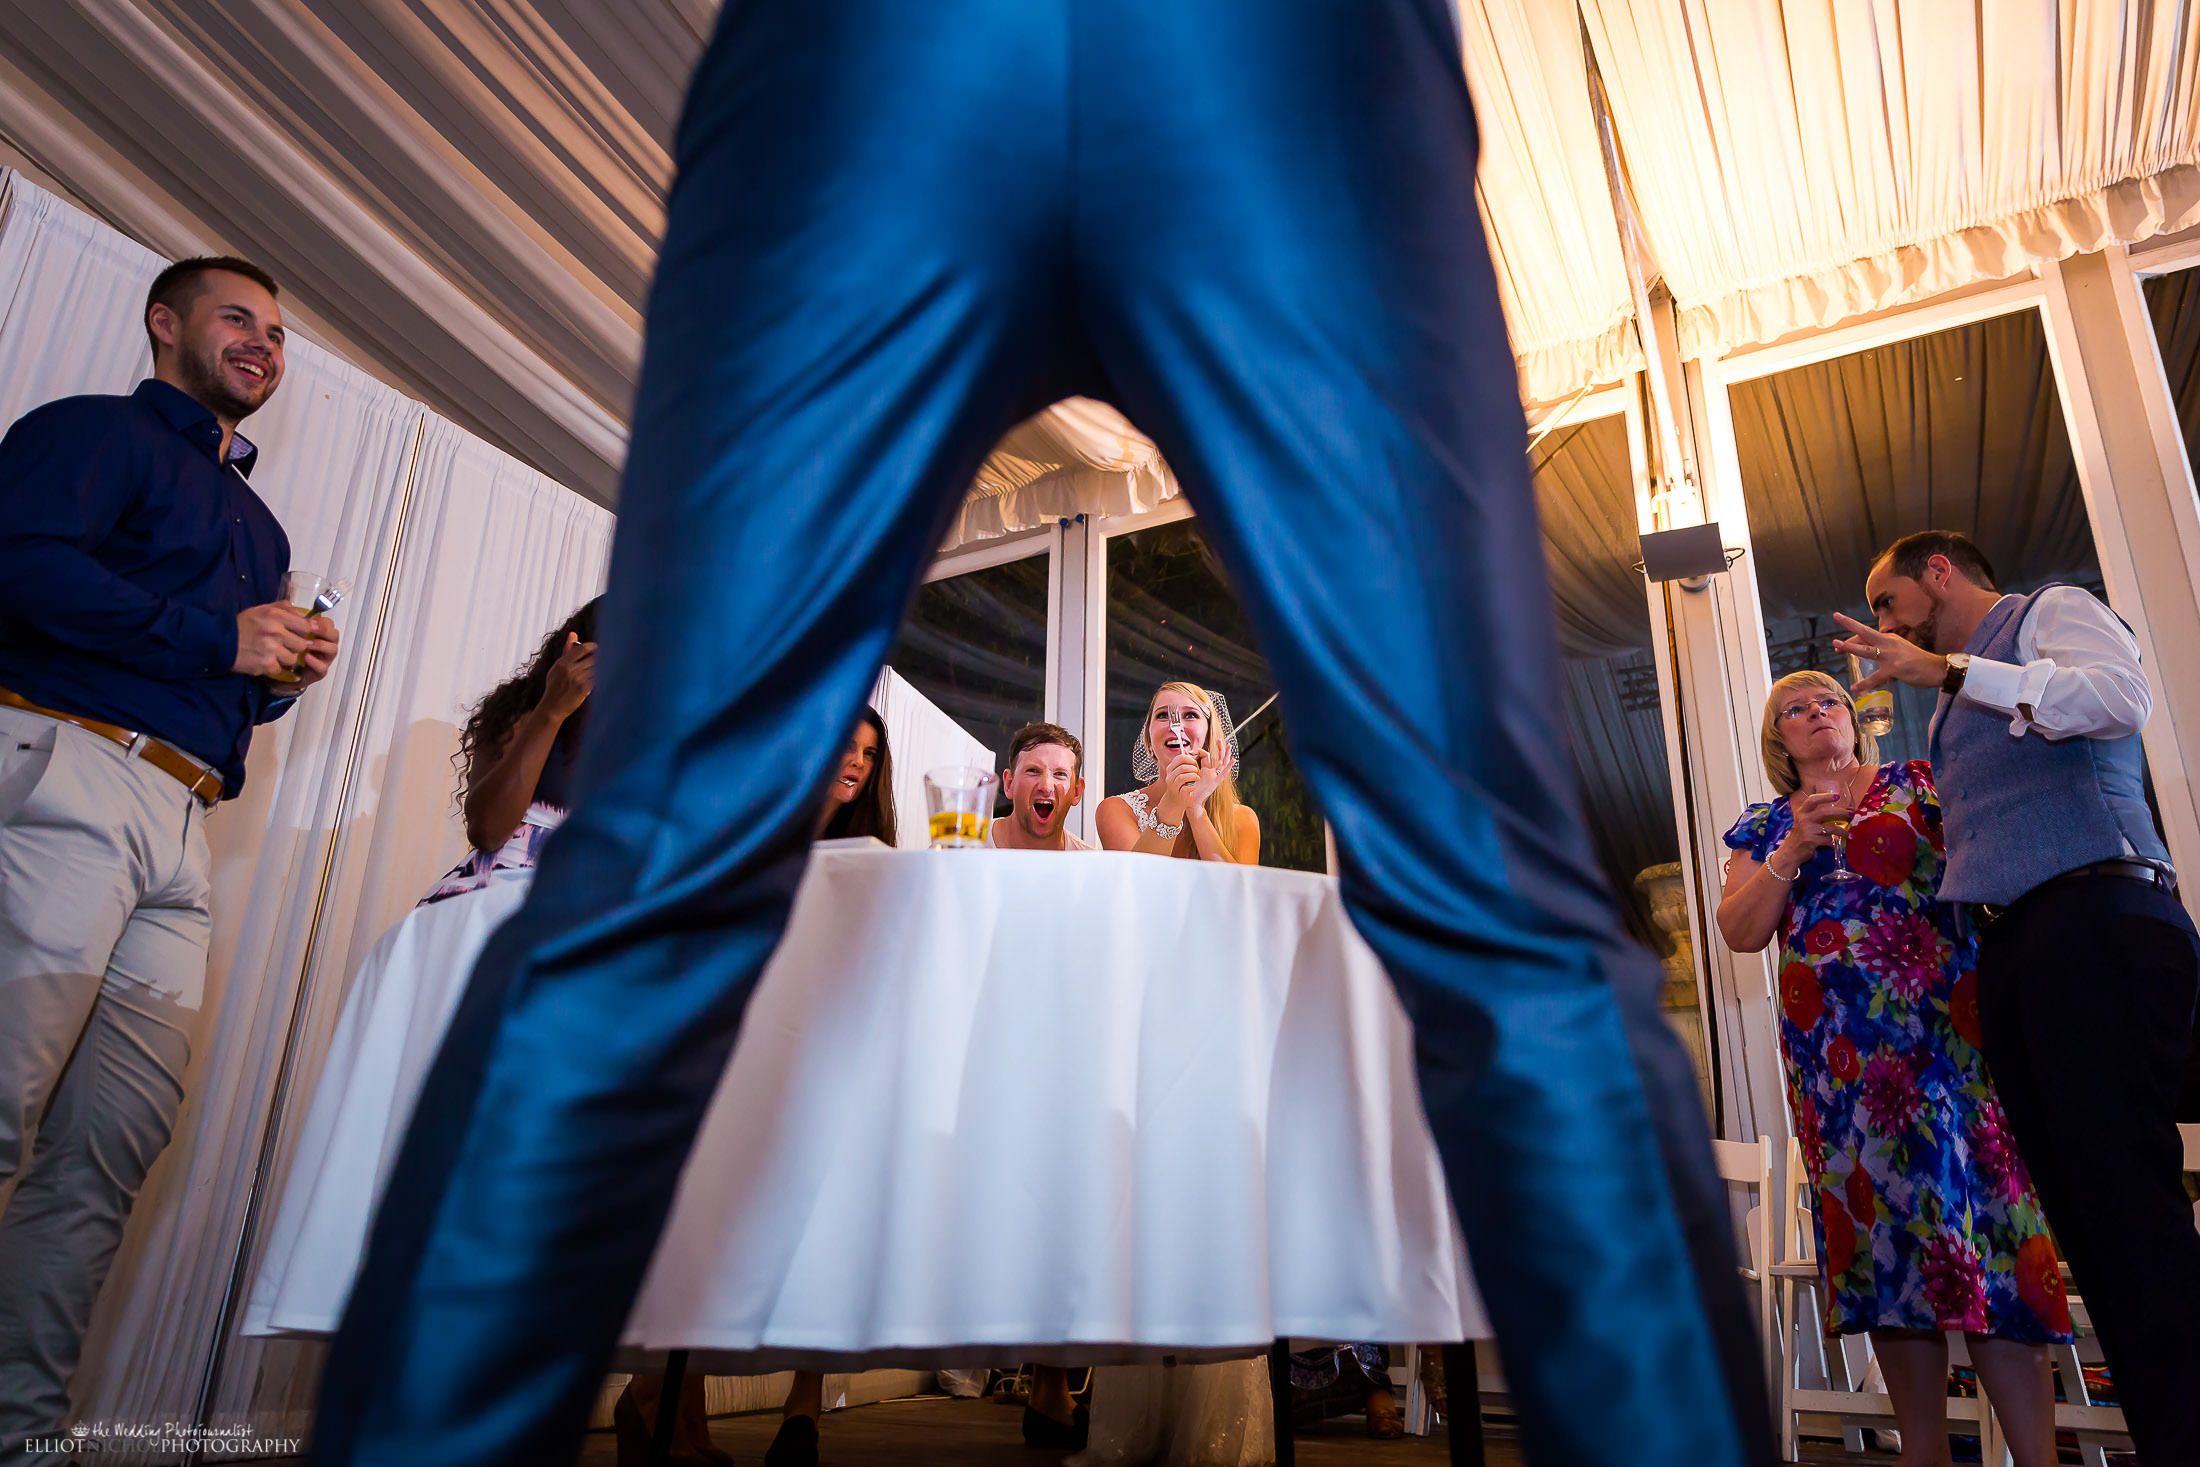 Bride ties to flick wedding cake off a folk into her wedding guests mouth. Photo by North East Wedding photojournalist Elliot Nichol.